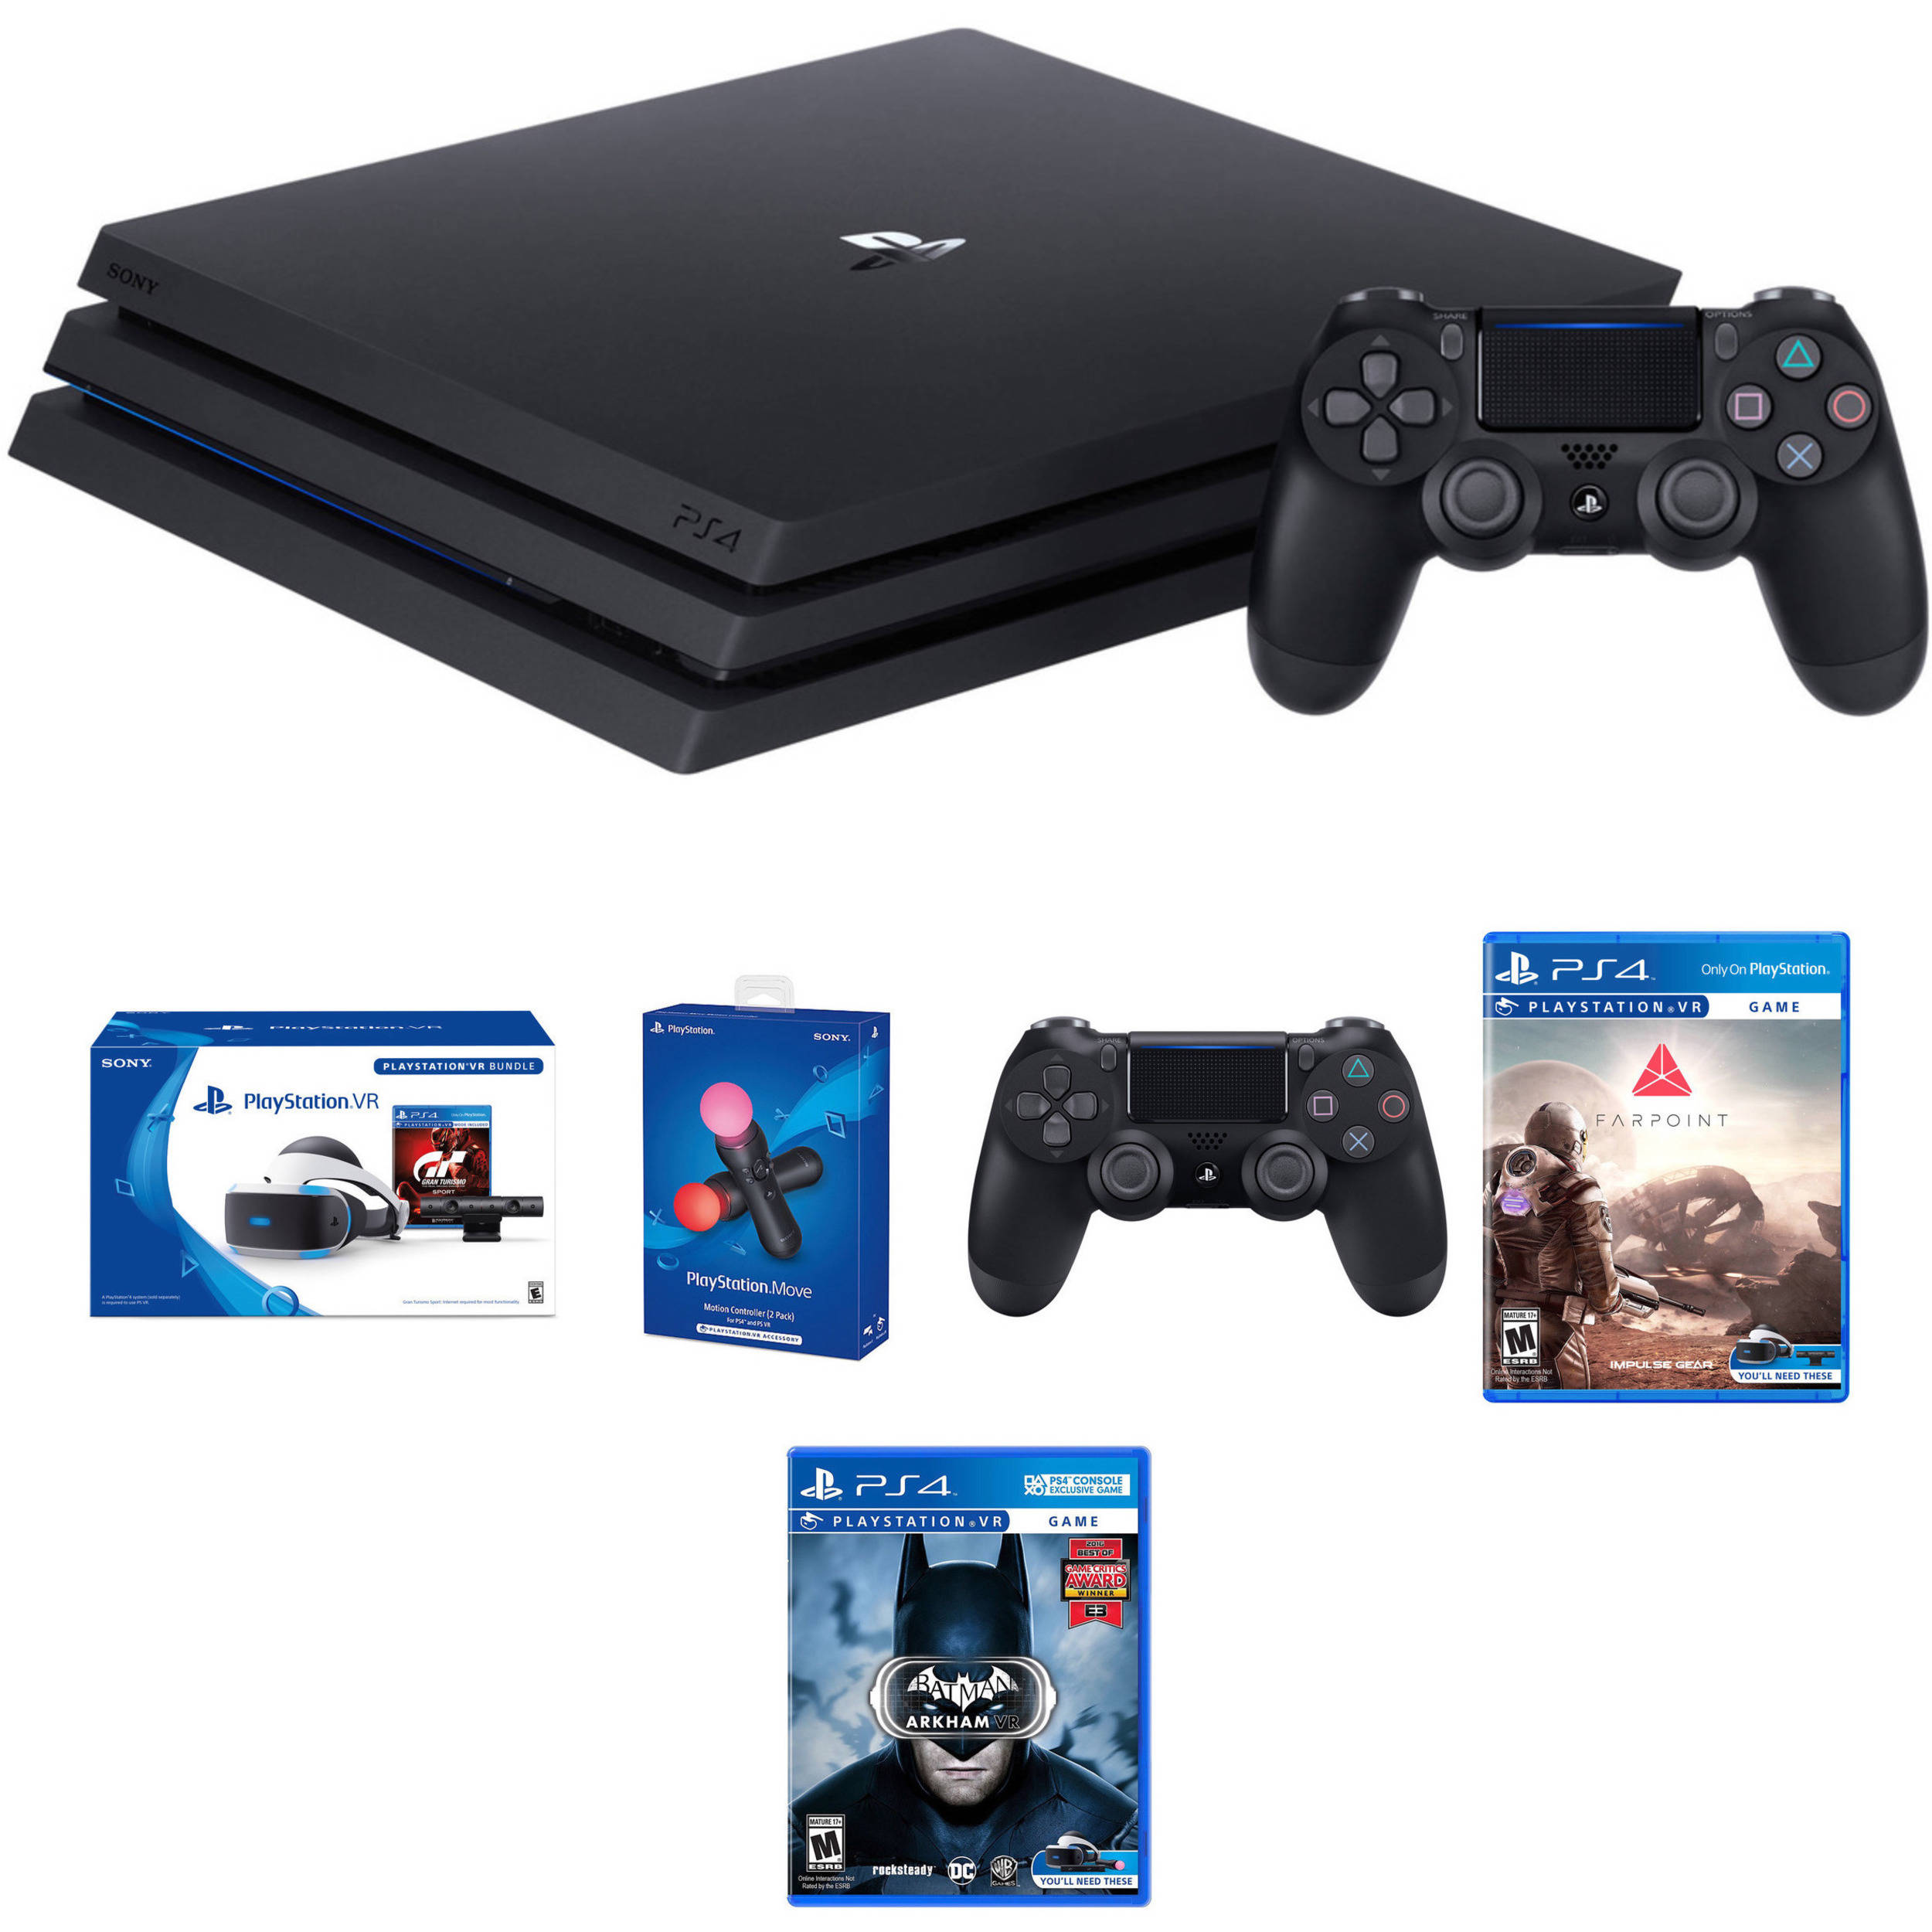 Sony PlayStation 4 Pro Gaming Console Kit with PS VR Gran Turismo Sport  Bundle, Farpoint VR, Batman: Arkham VR & Accessories